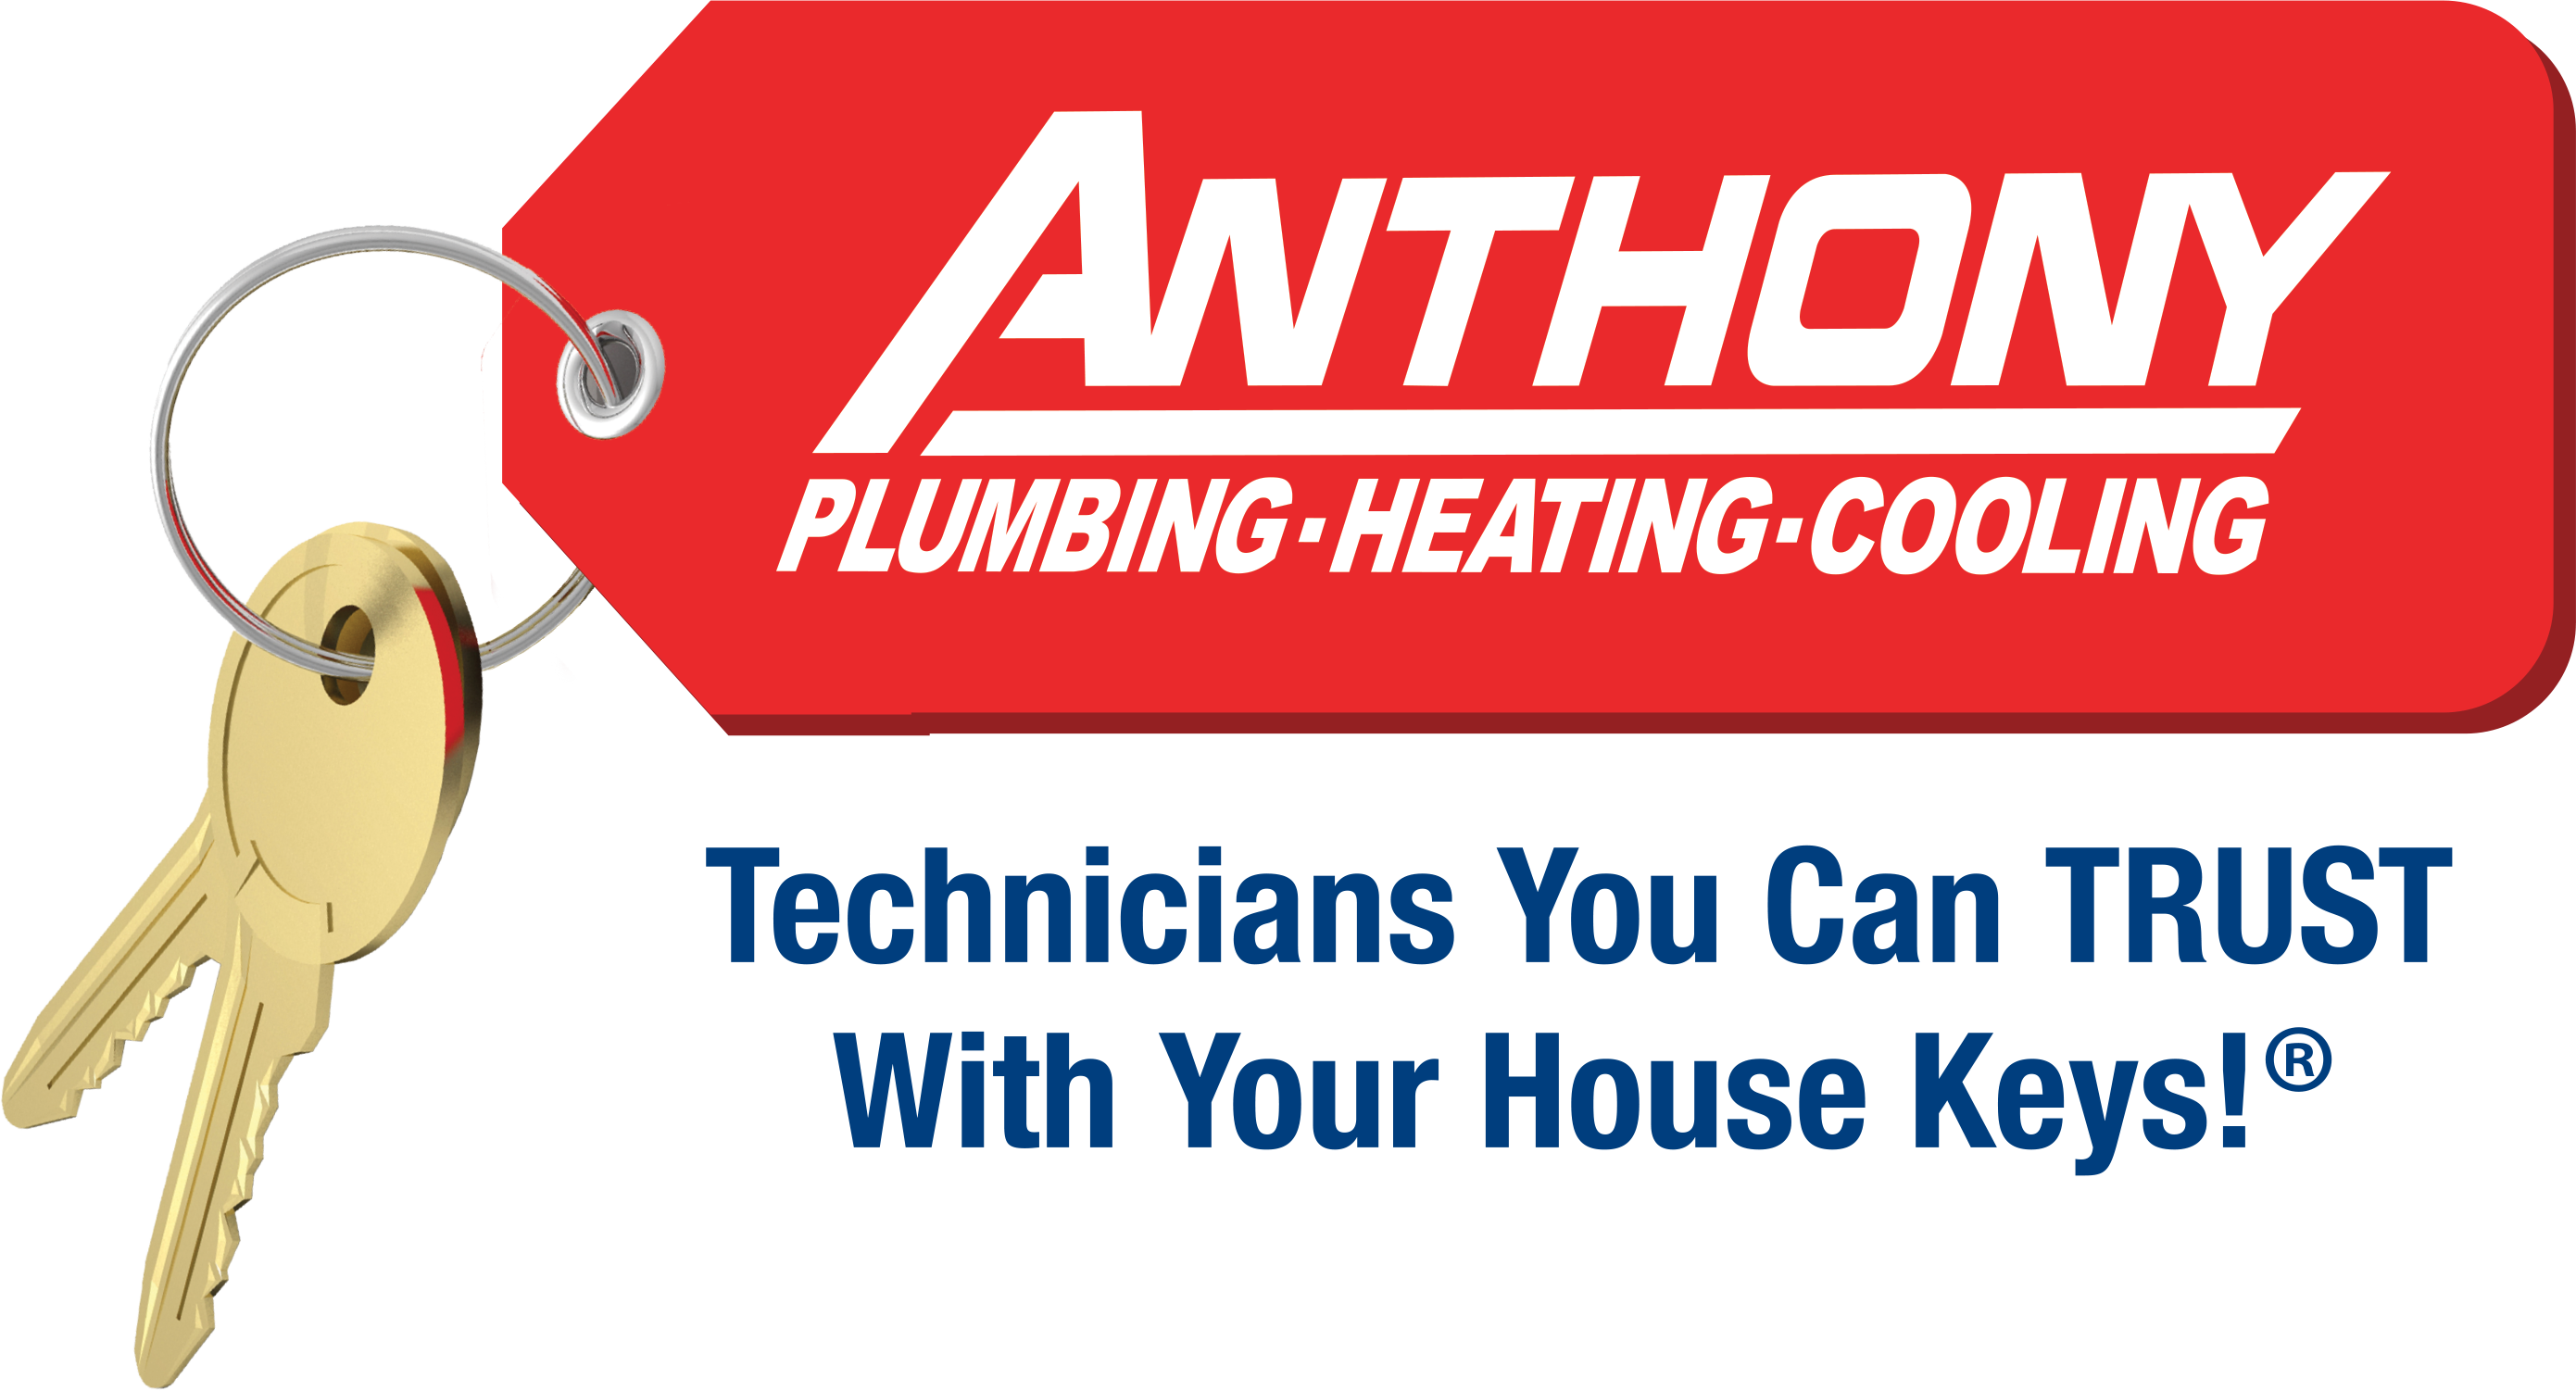 Anthony Plumbing in Kansas City, also provides Heating and